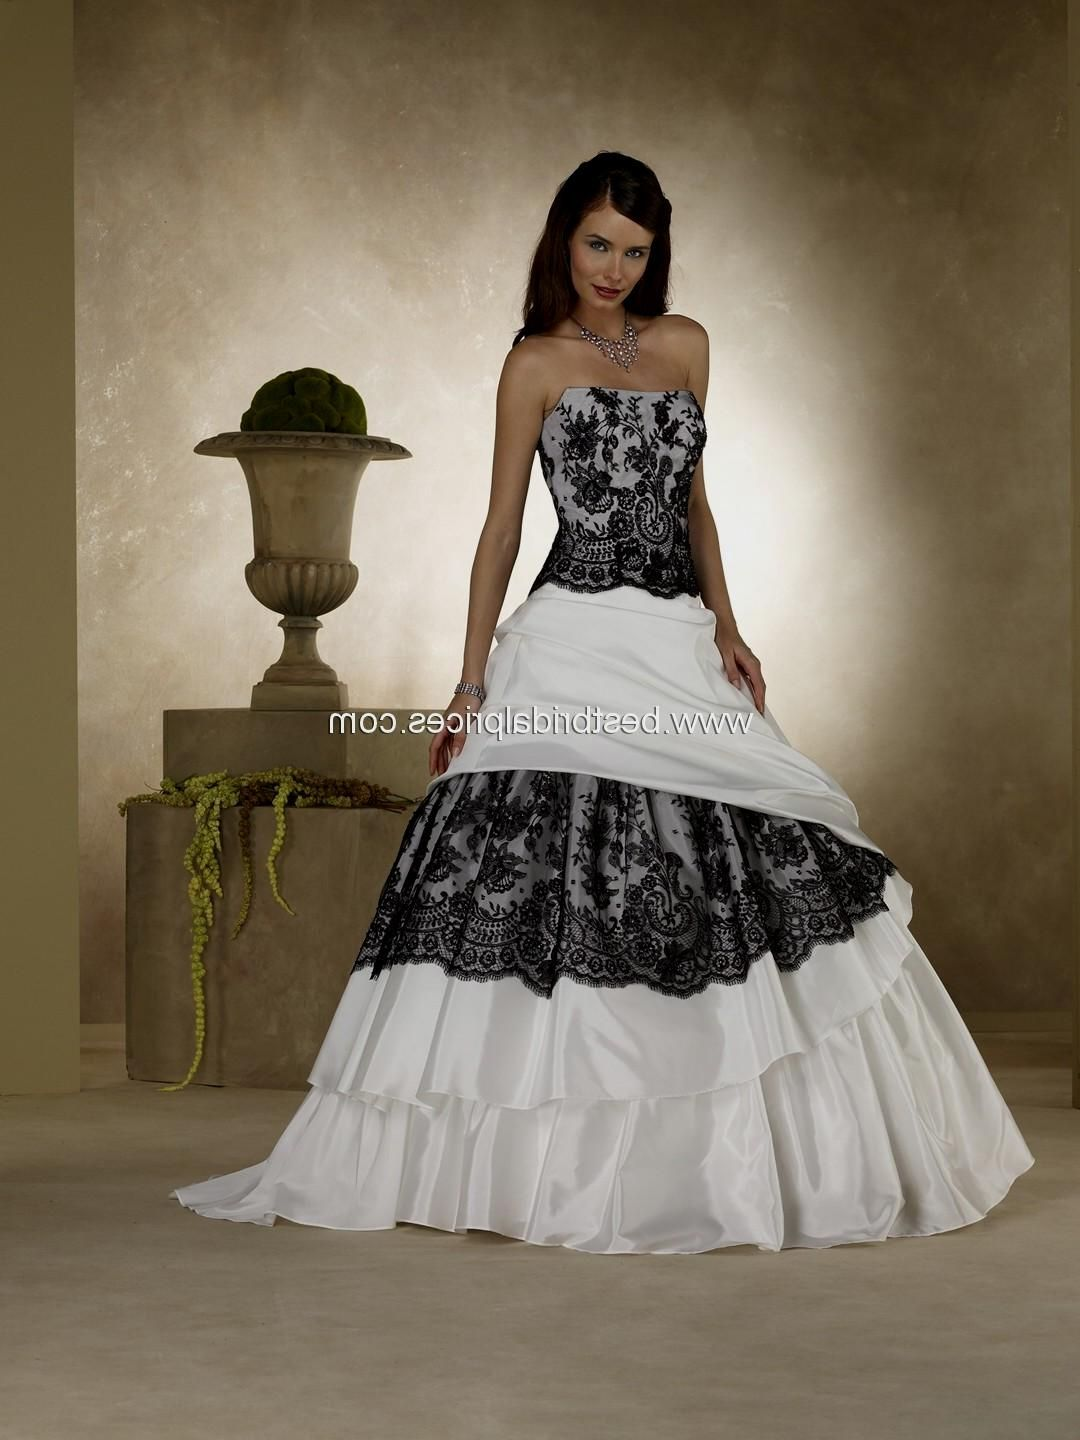 50+ Wedding Dress Fantasy - Dresses for Wedding Party Check more at ...